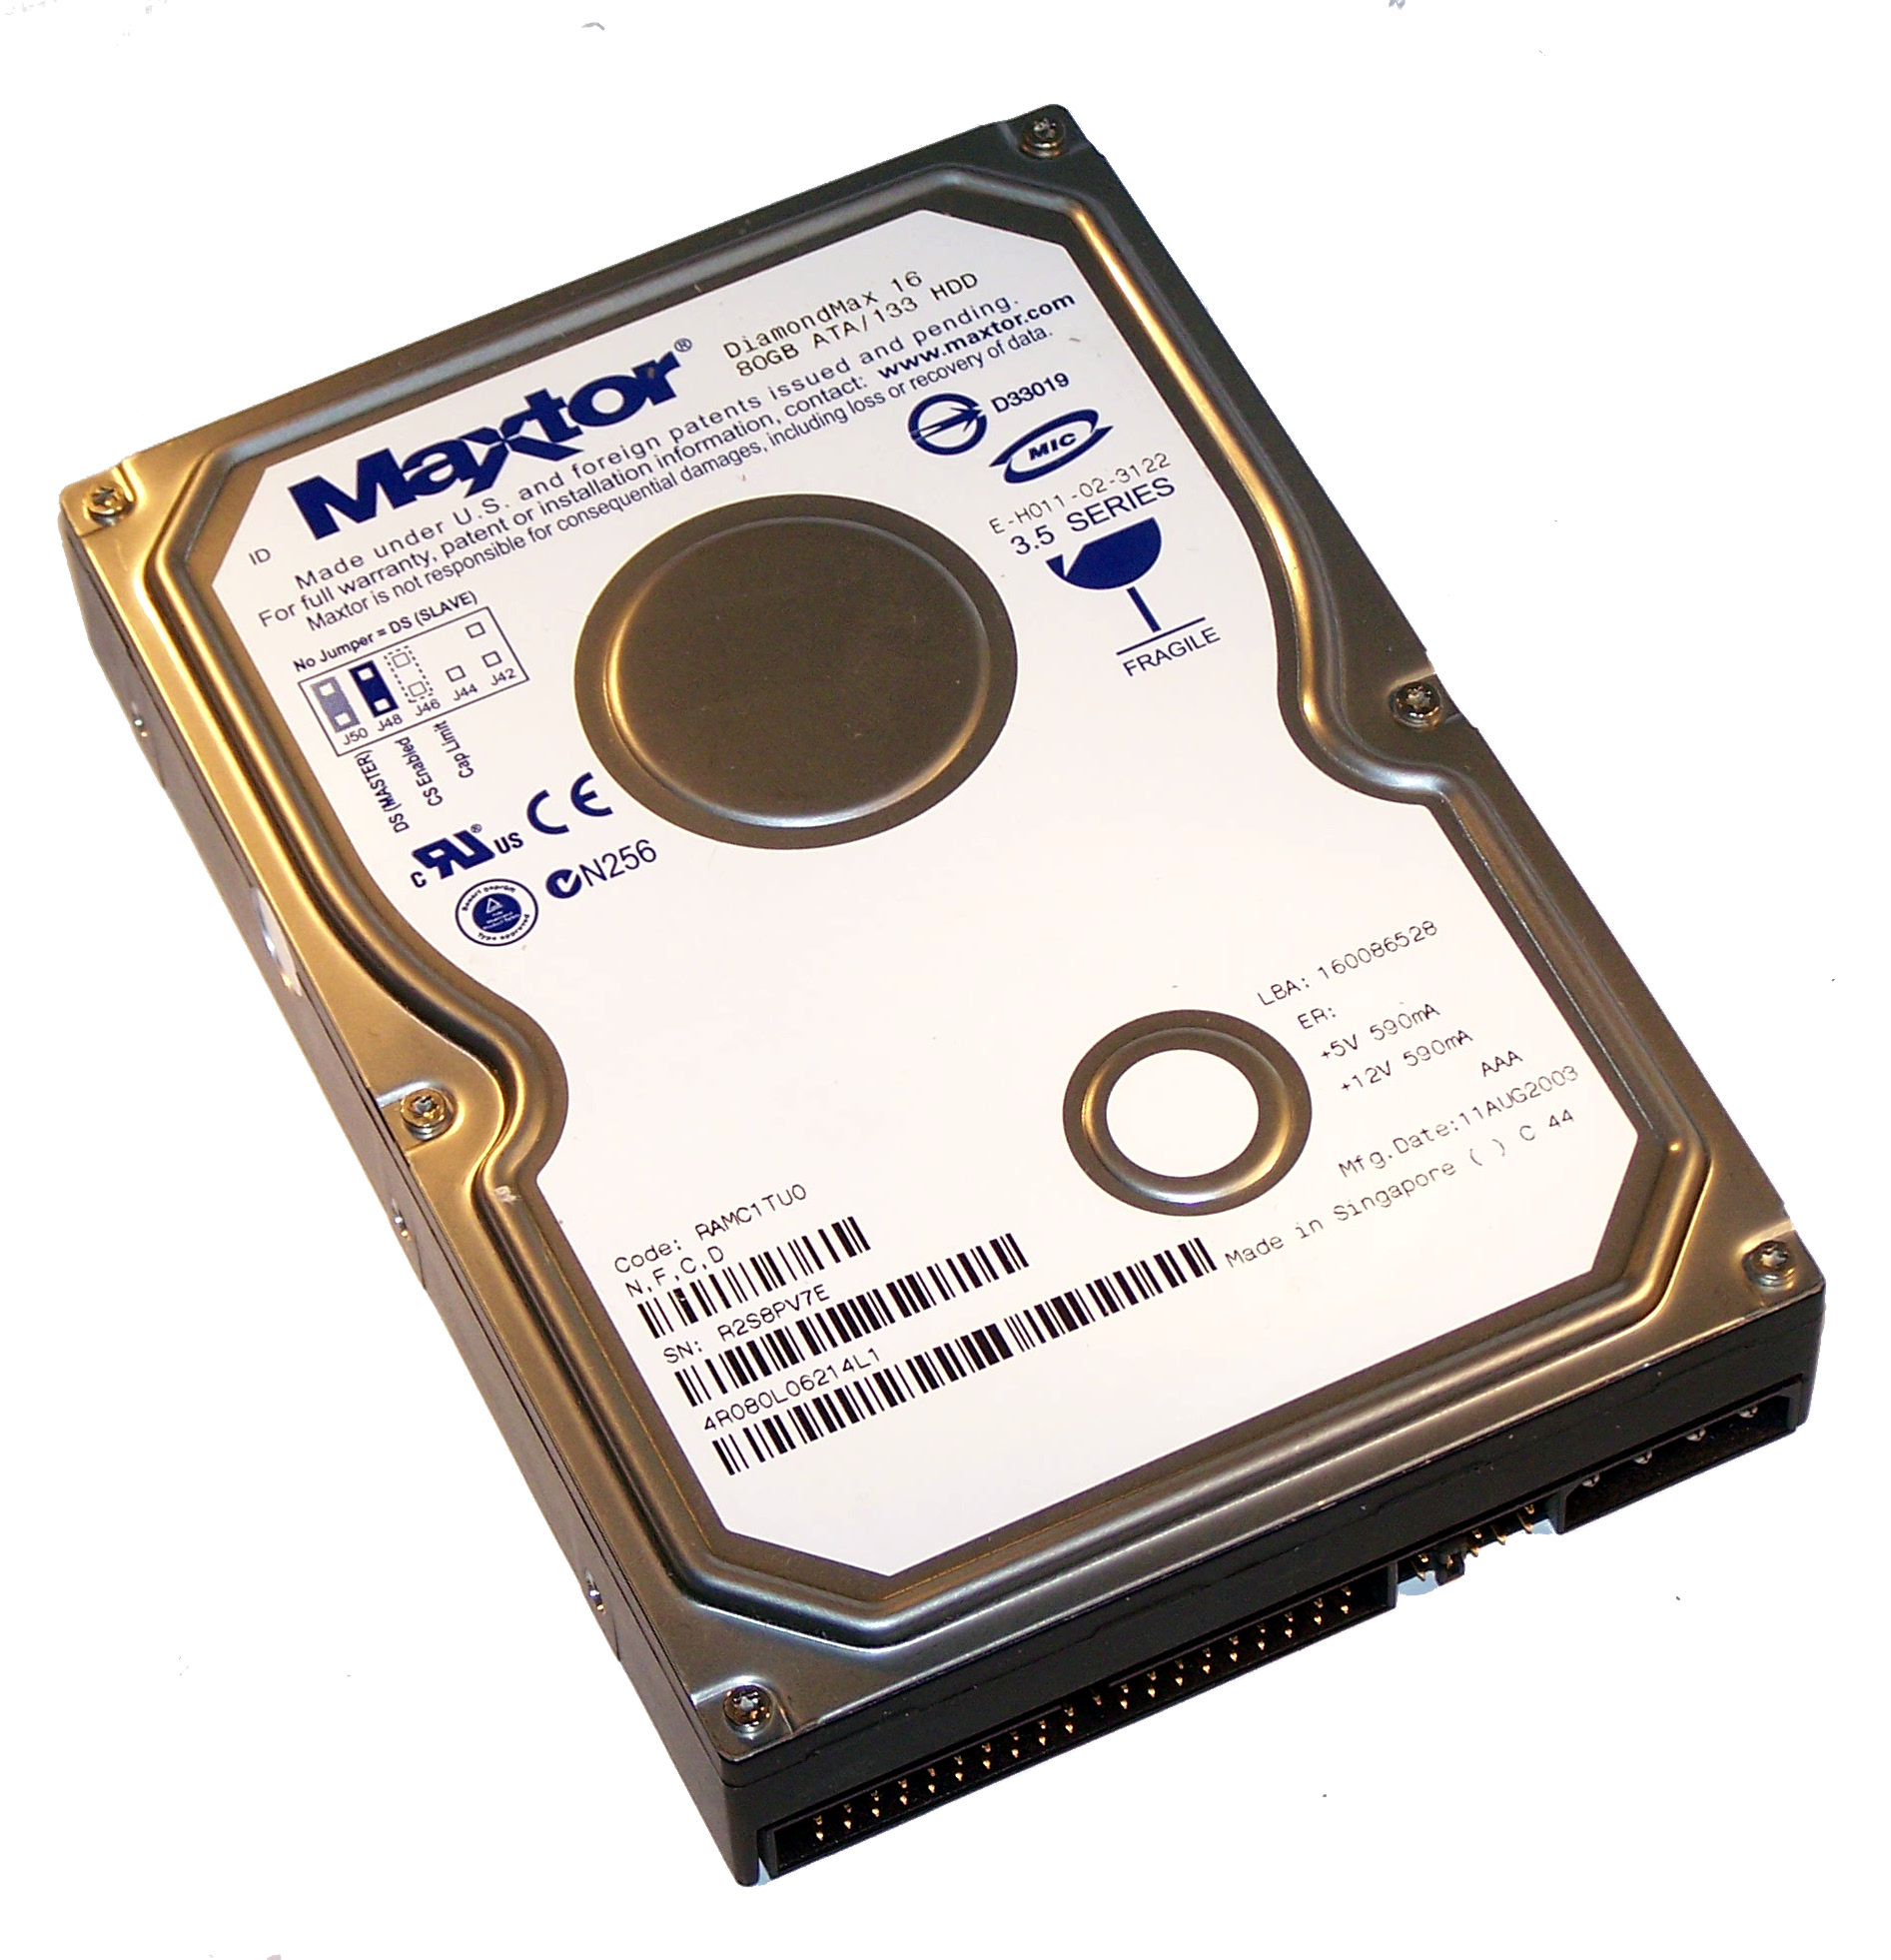 MAXTOR 133 CONTROLLER WINDOWS 7 DRIVER